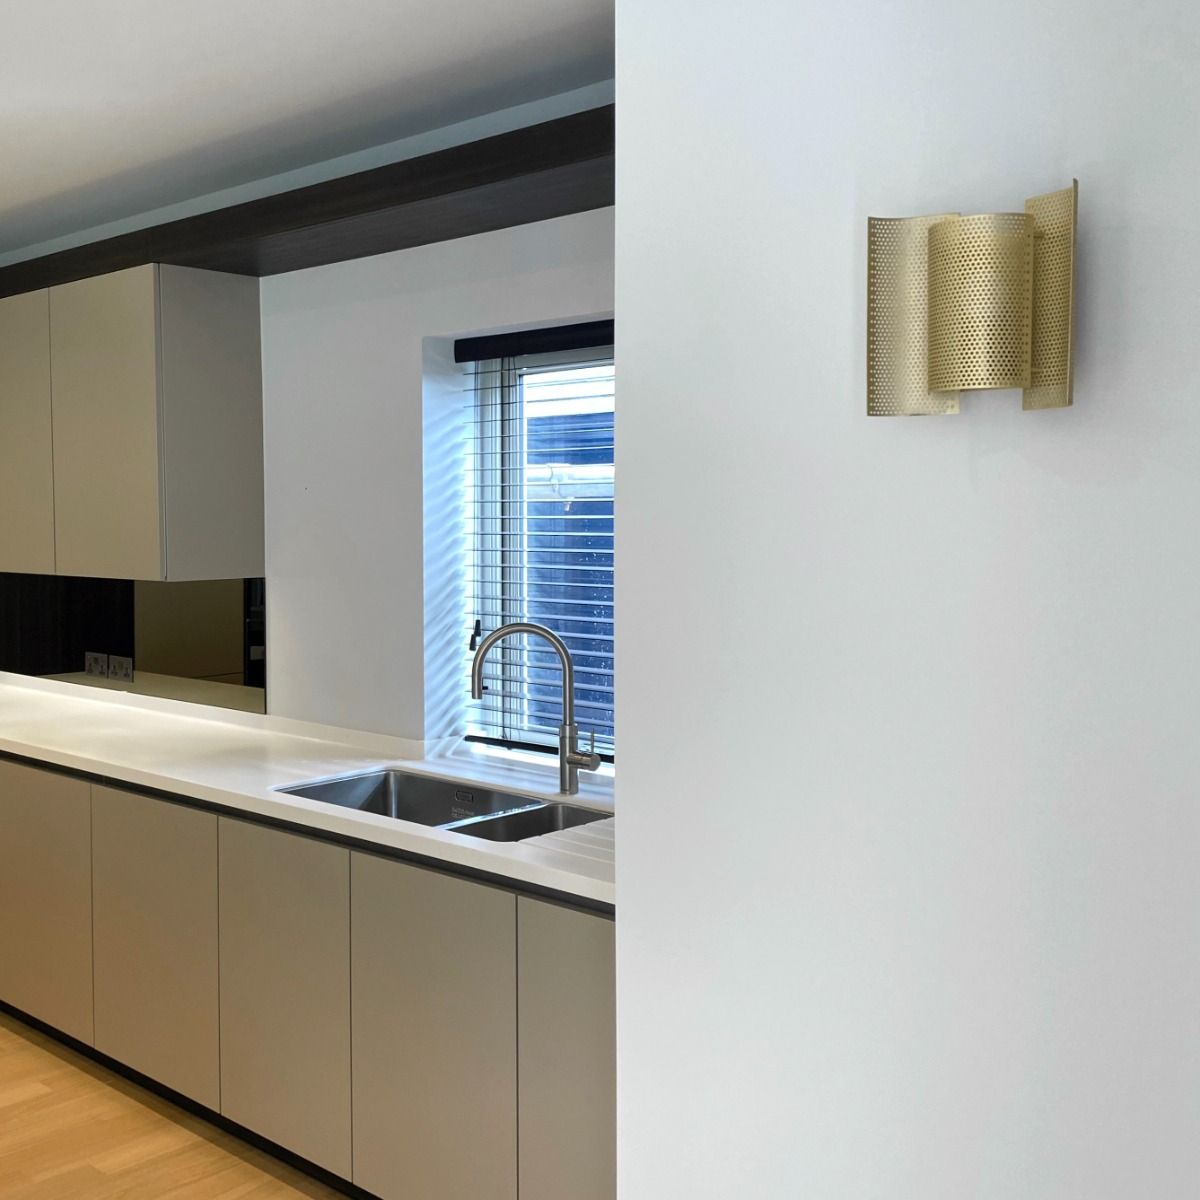 Northern Butterfly Wall Lights - Perforated - Brass - Off - Fitted in a kitchen